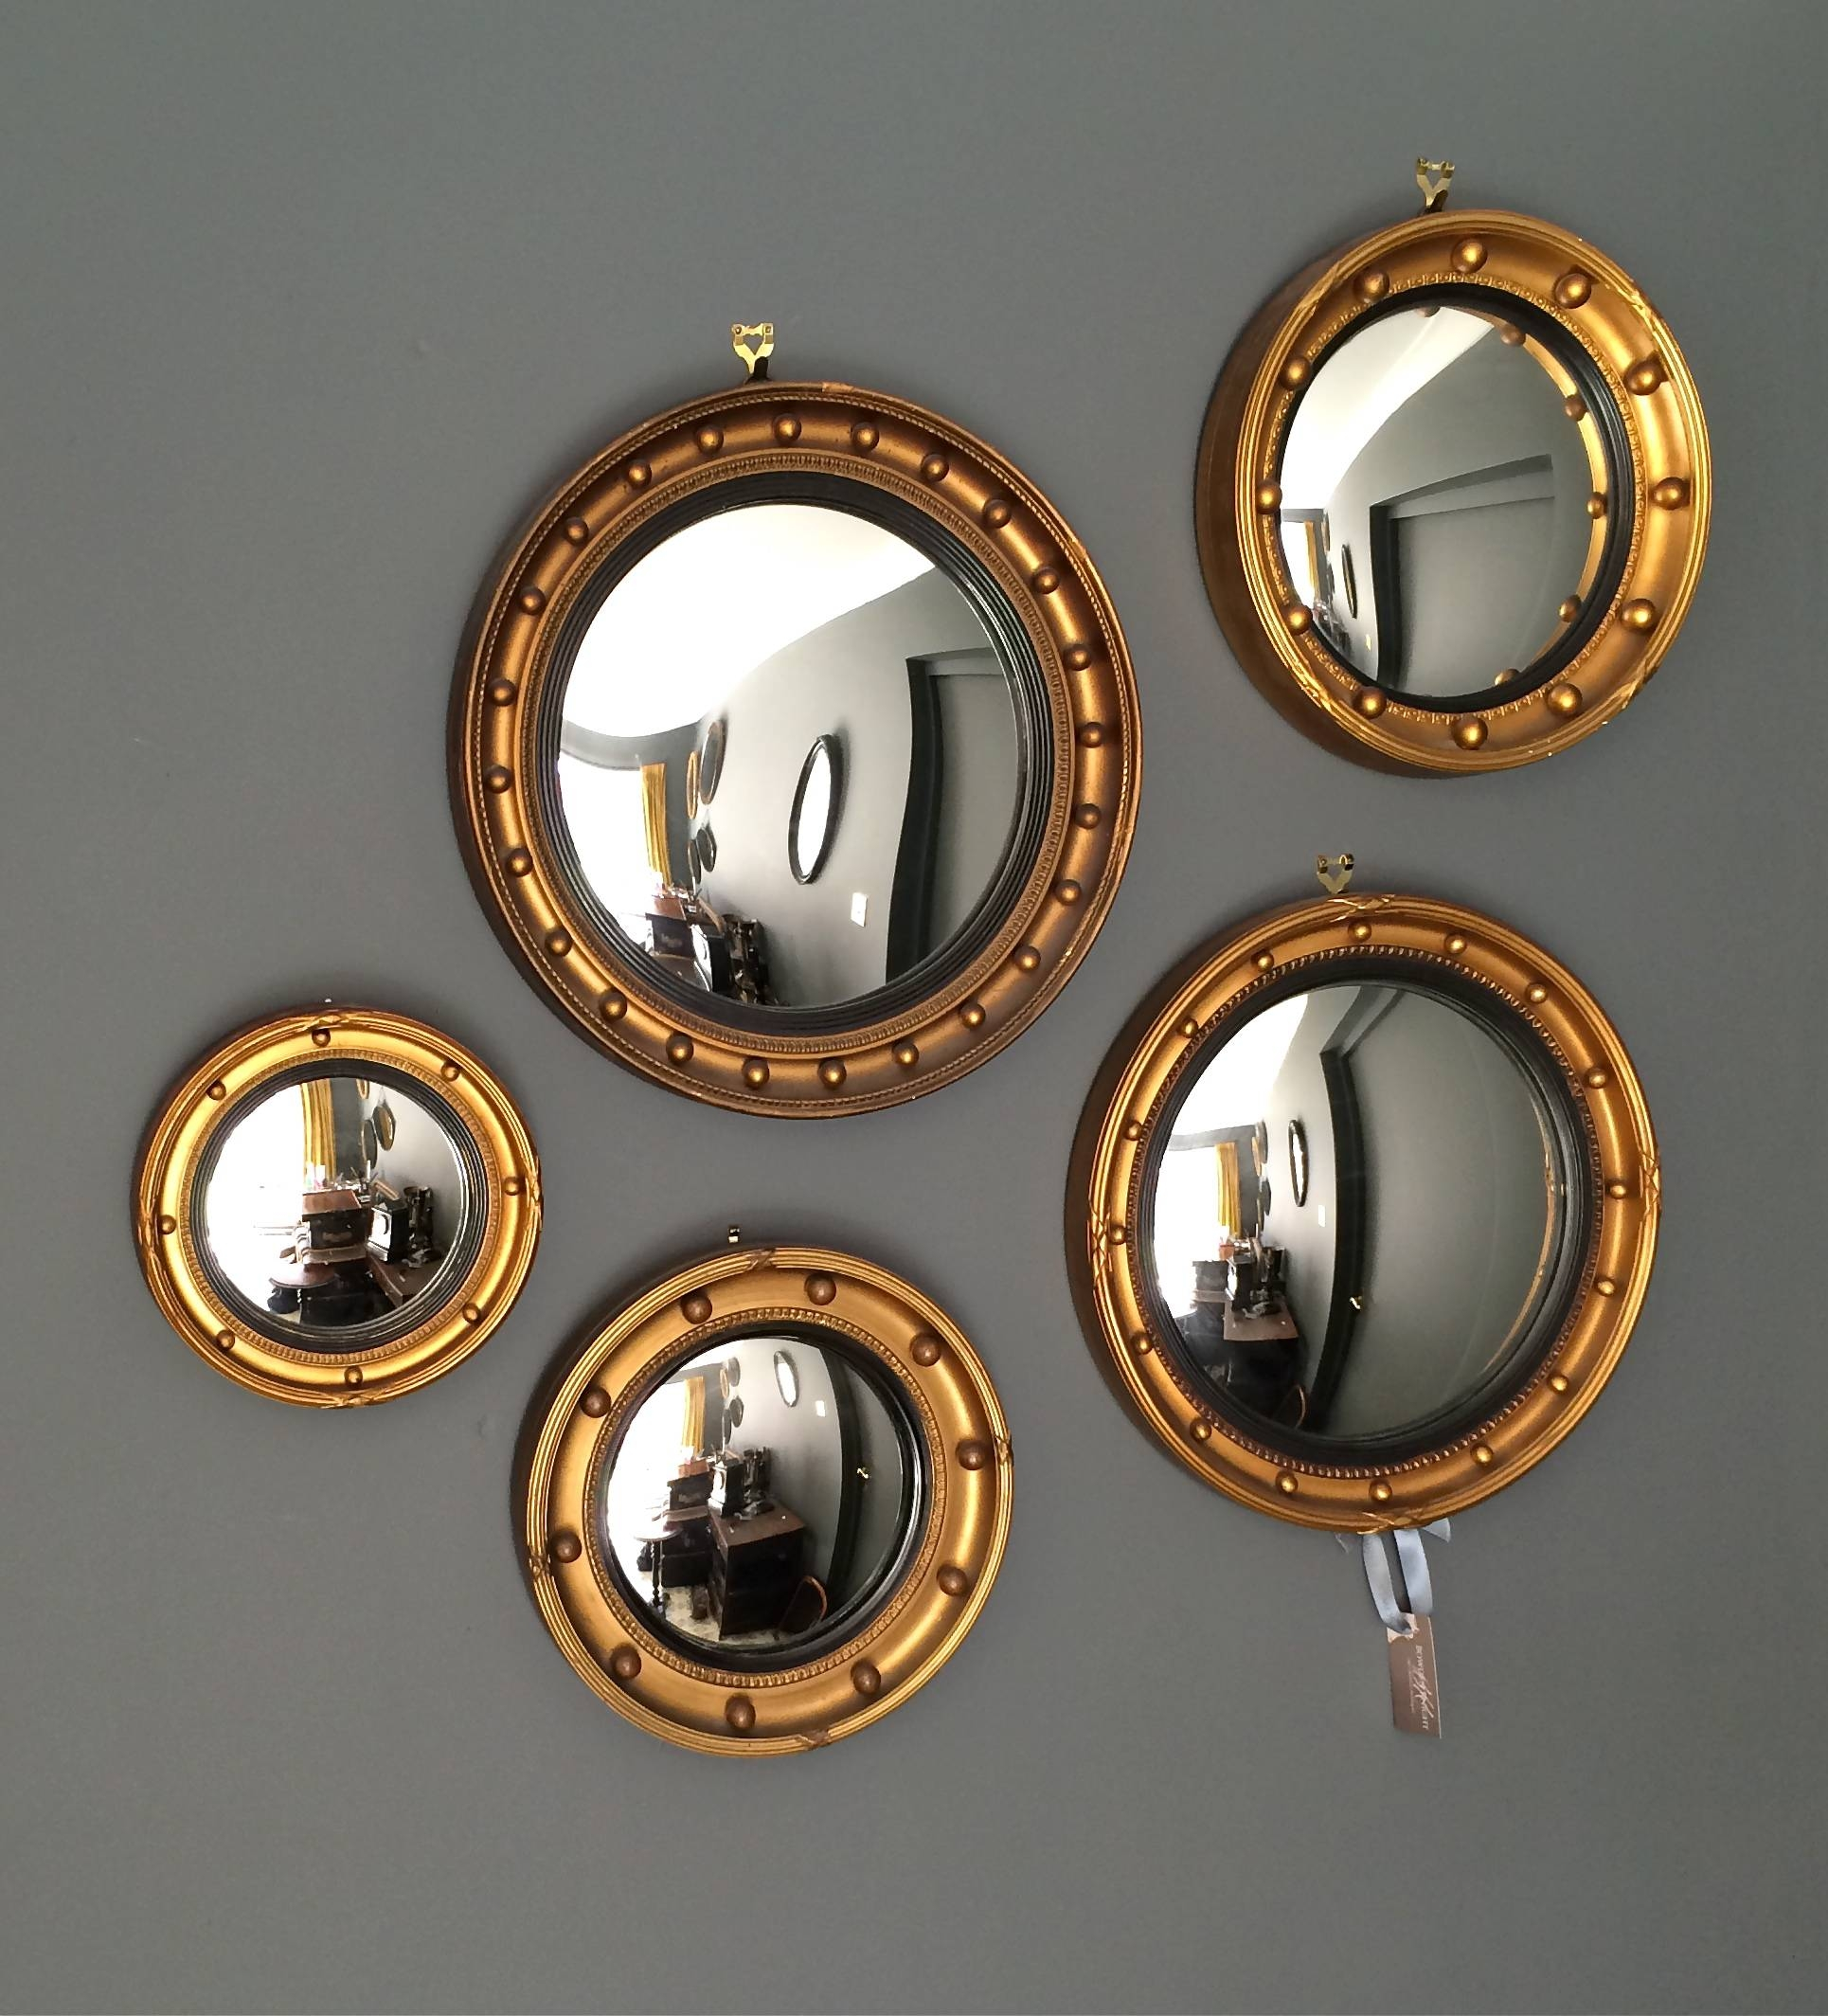 Summer Styling The Decorative Antique Way At Bowden Knight pertaining to Convex Decorative Mirrors (Image 14 of 15)